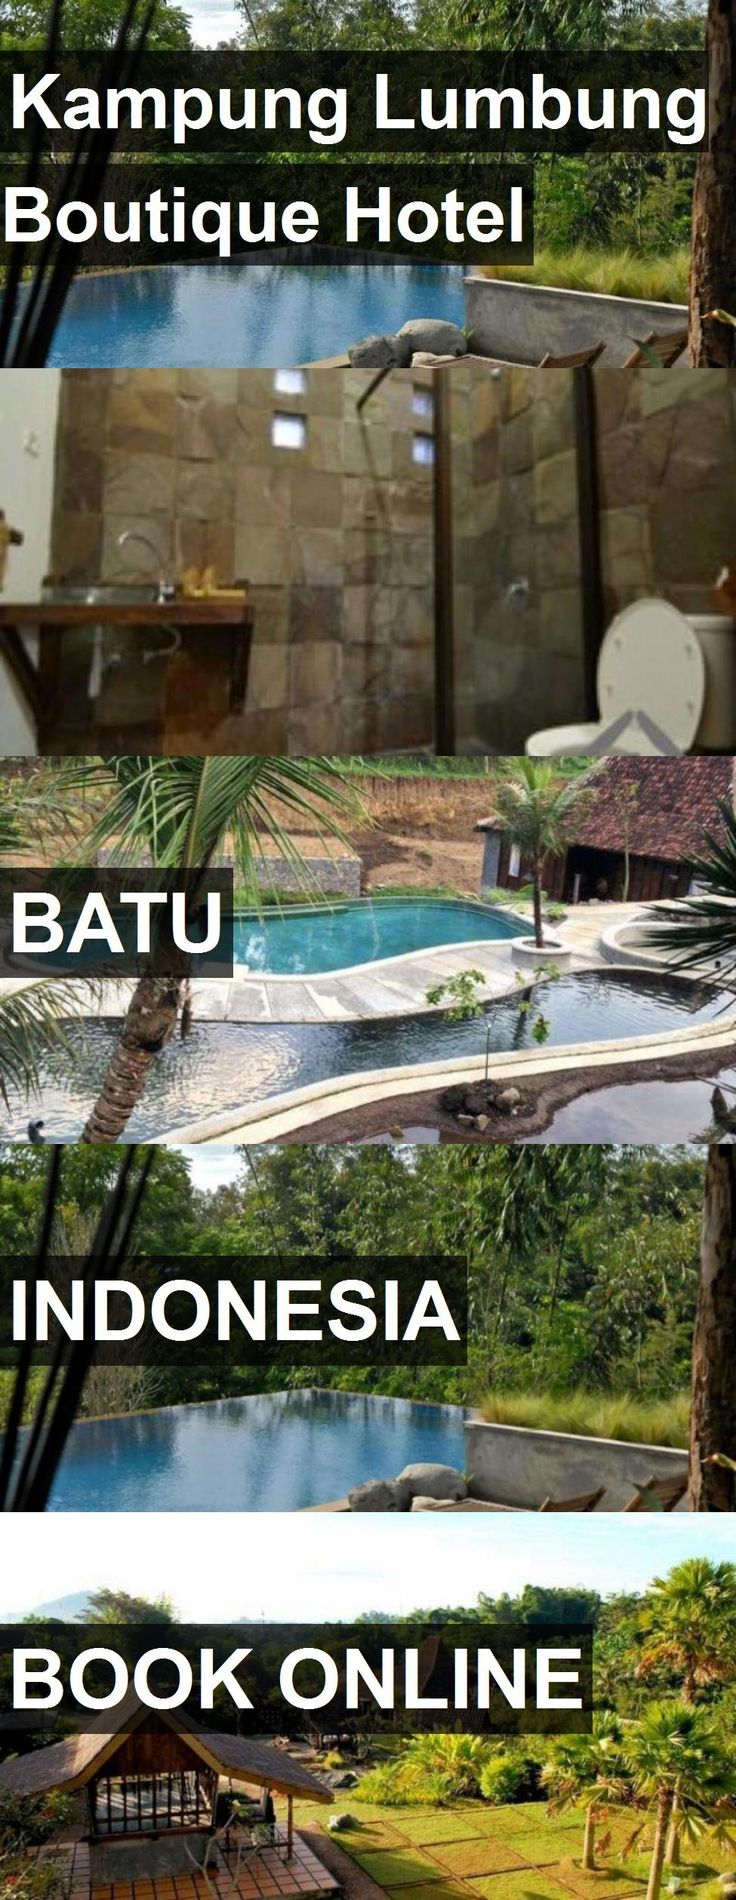 Kampung Lumbung Boutique Hotel in Batu, Indonesia. For more information, photos, reviews and best prices please follow the link. #Indonesia #Batu #travel #vacation #hotel